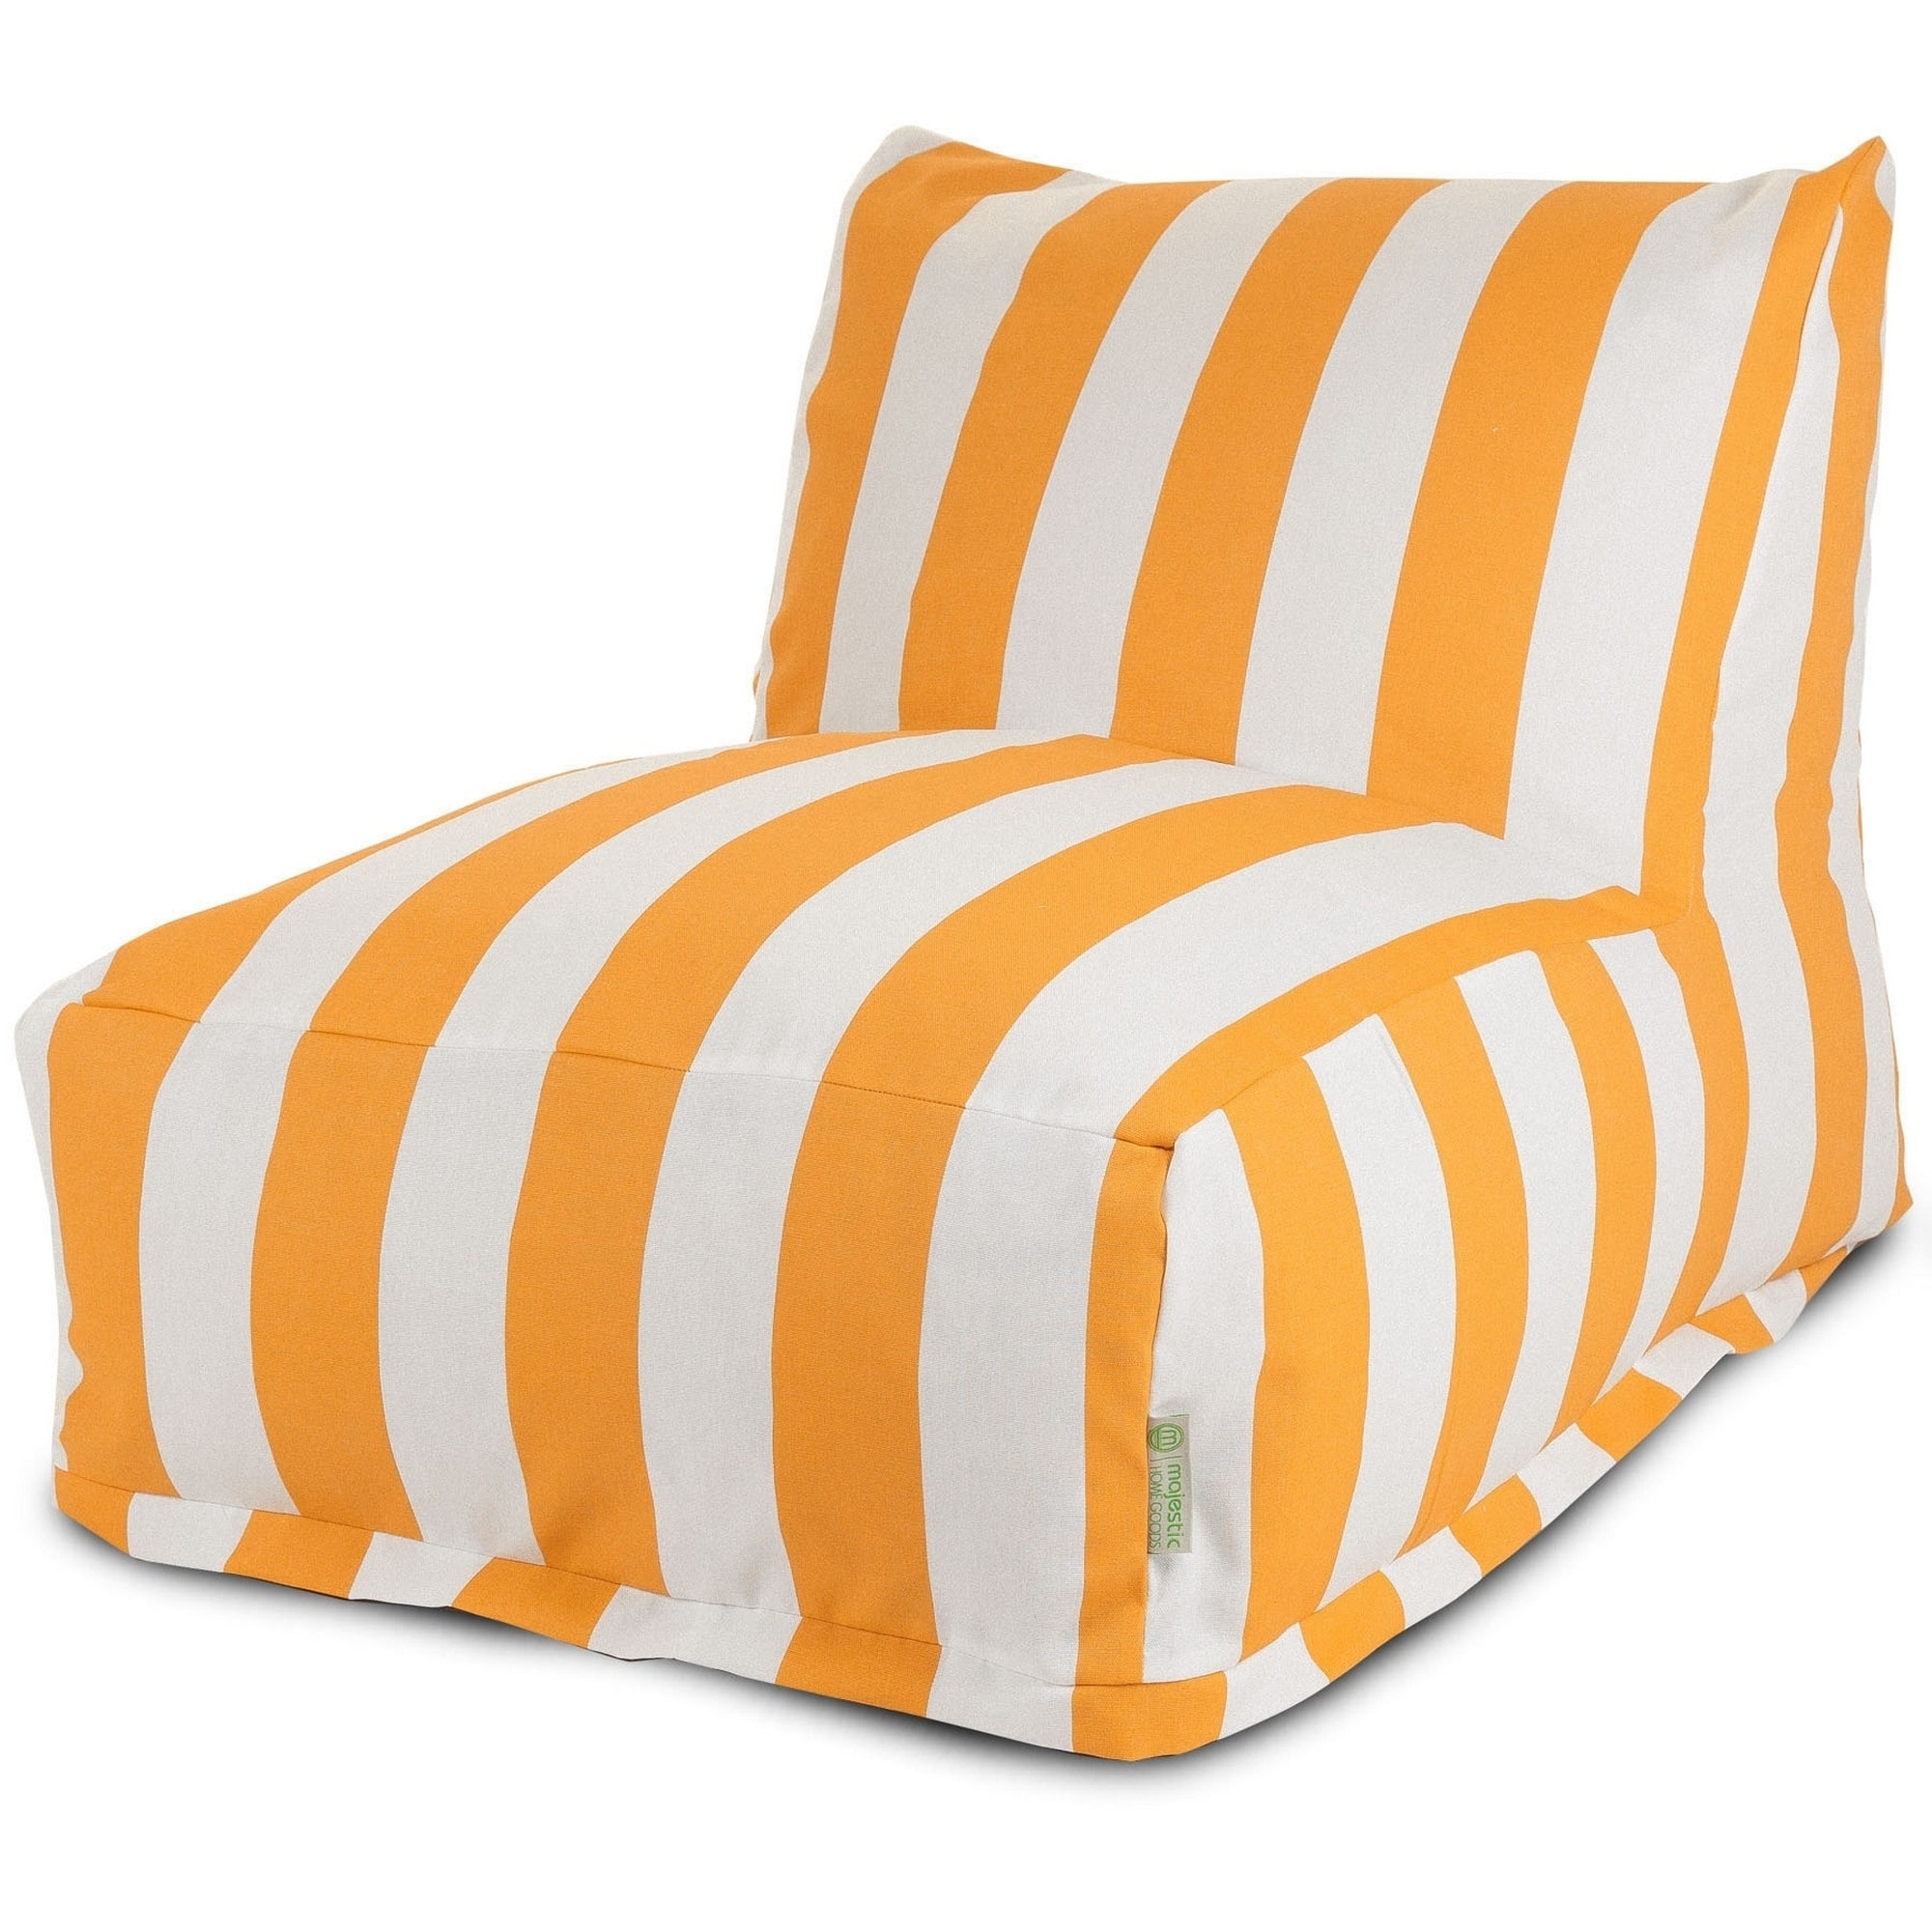 Majestic Home Vertical Stripe Bean Bag Lounger Chair (Yel...